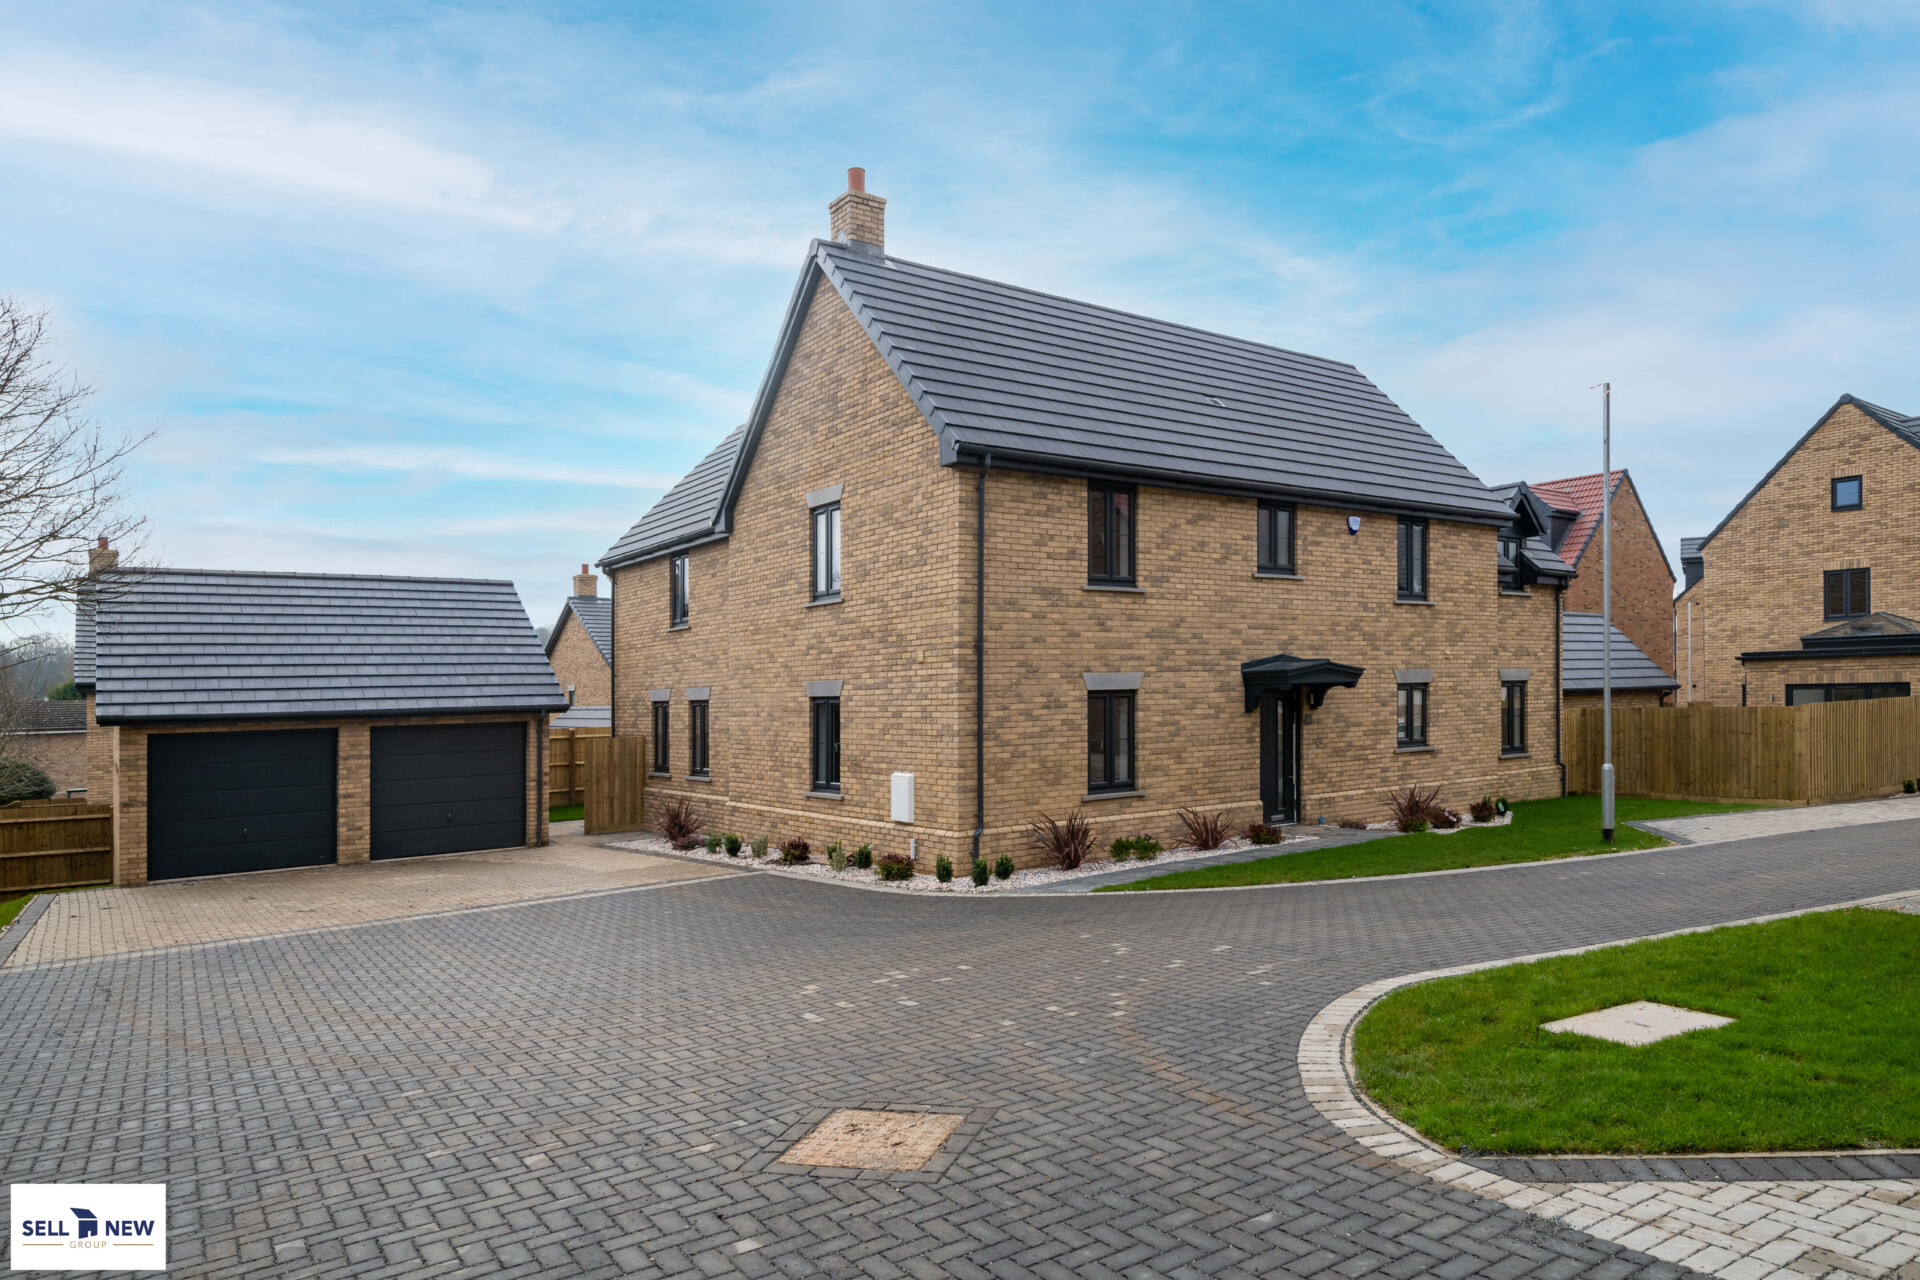 Plot 16 Woodlands Maulden – Spacious four bedroom detached with double garage